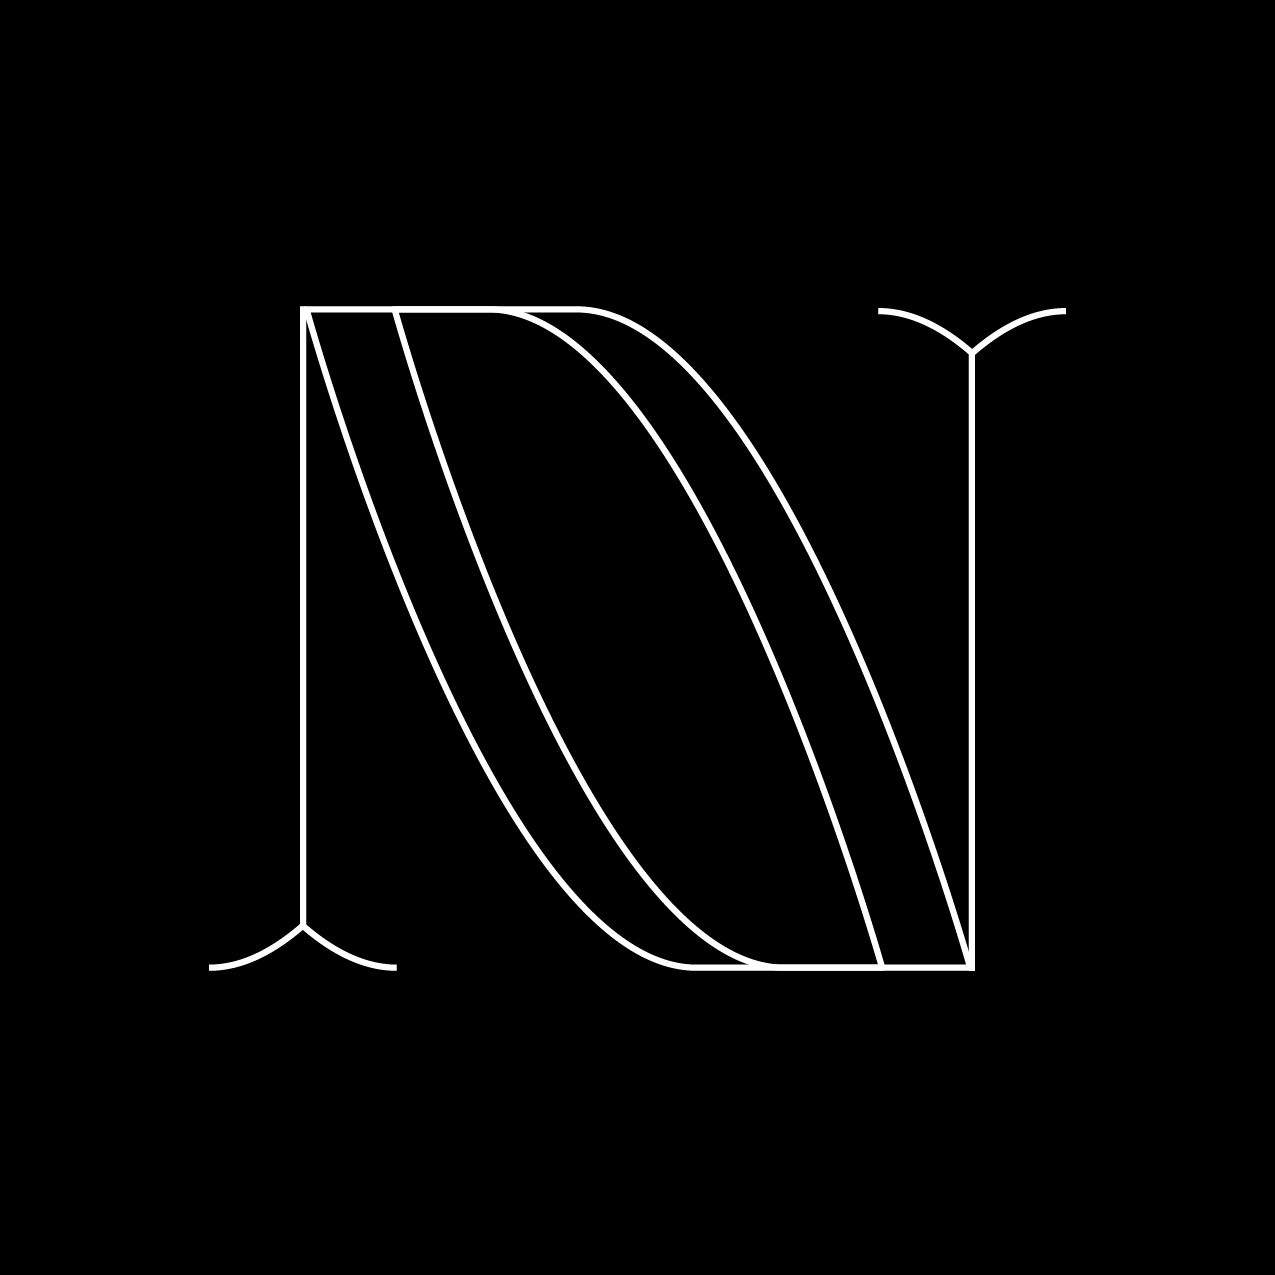 Letter N6 Design by Furia